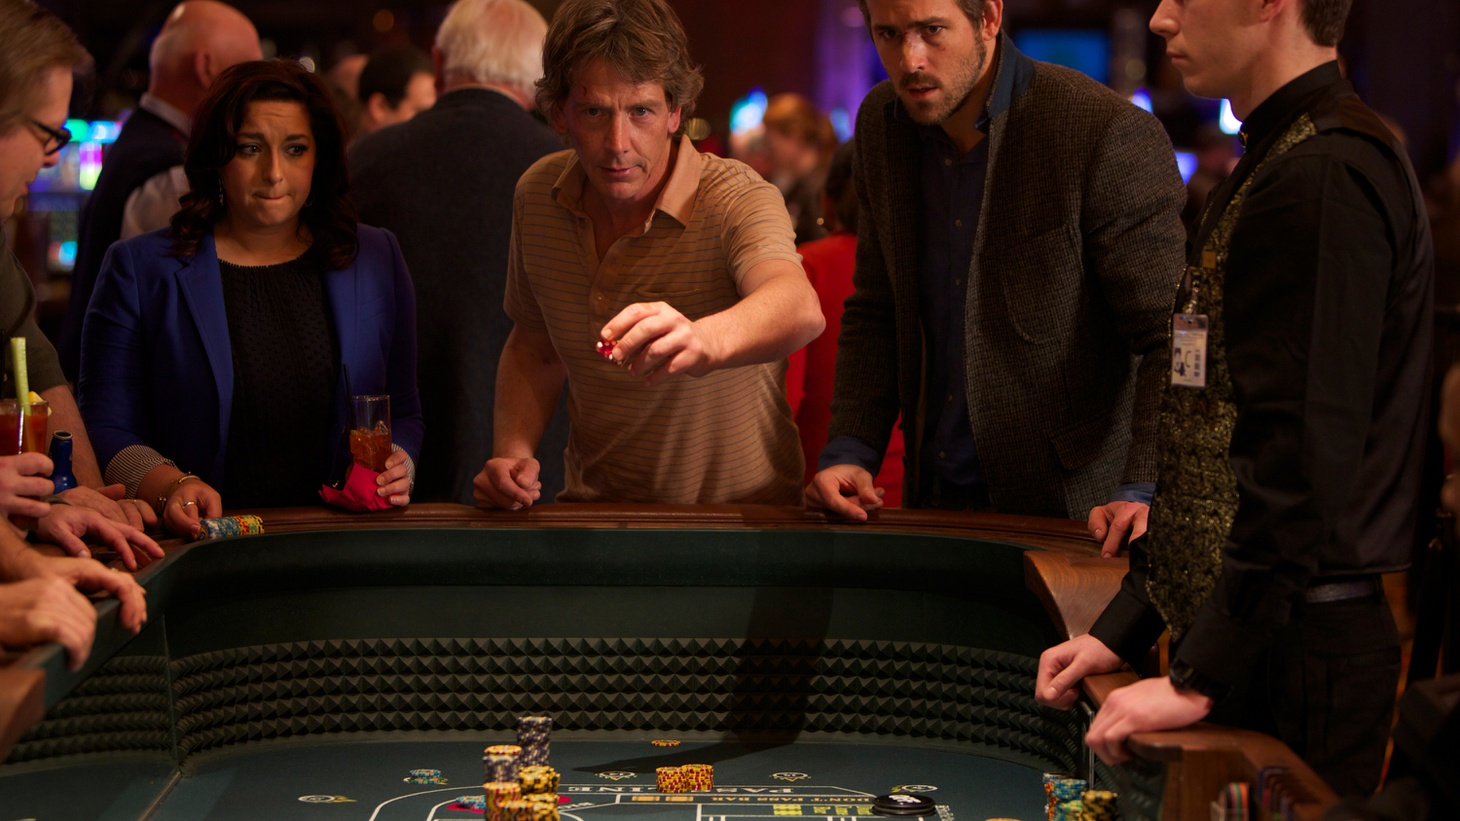 Ben Mendelsohn joins Elvis Mitchell to discuss his Emmy nomination and taking on gambling addiction for his role in Mississippi Grind.